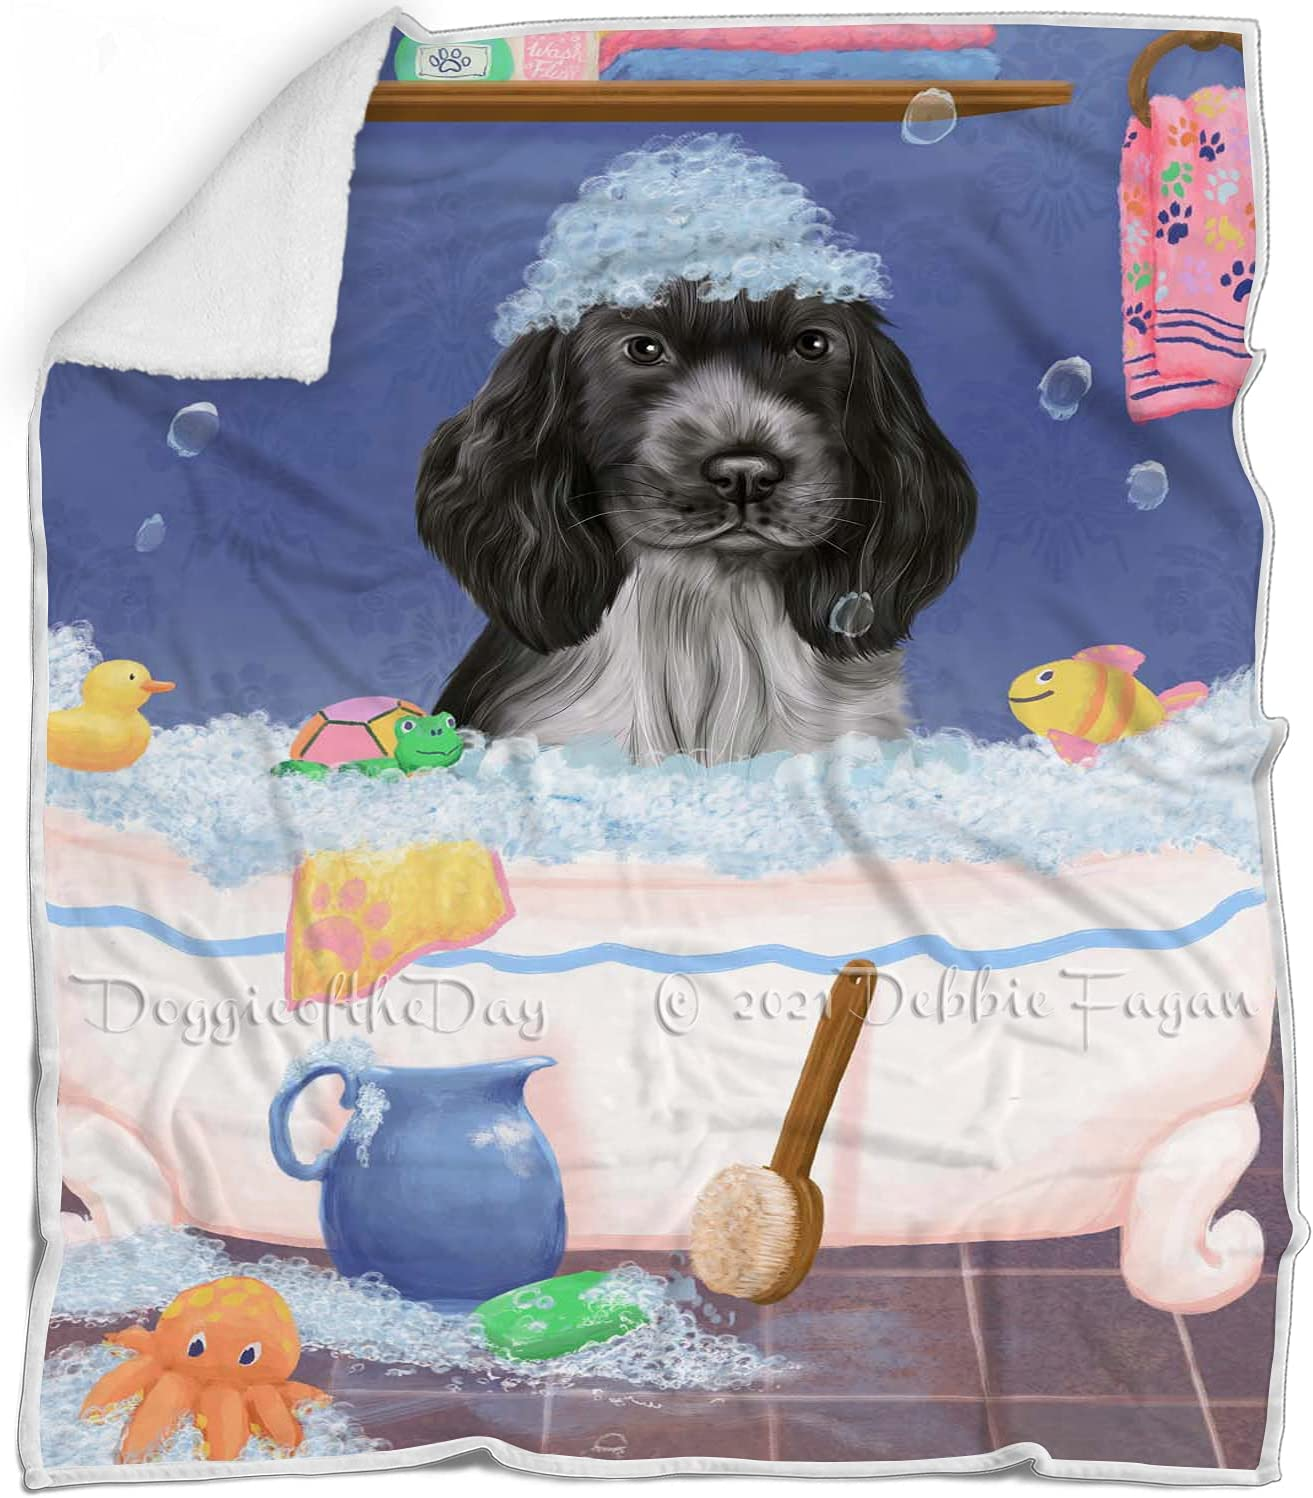 Doggie of the Day Rub A Dub in Spaniel Limited time trial price Dog cheap Tub Blan Cocker